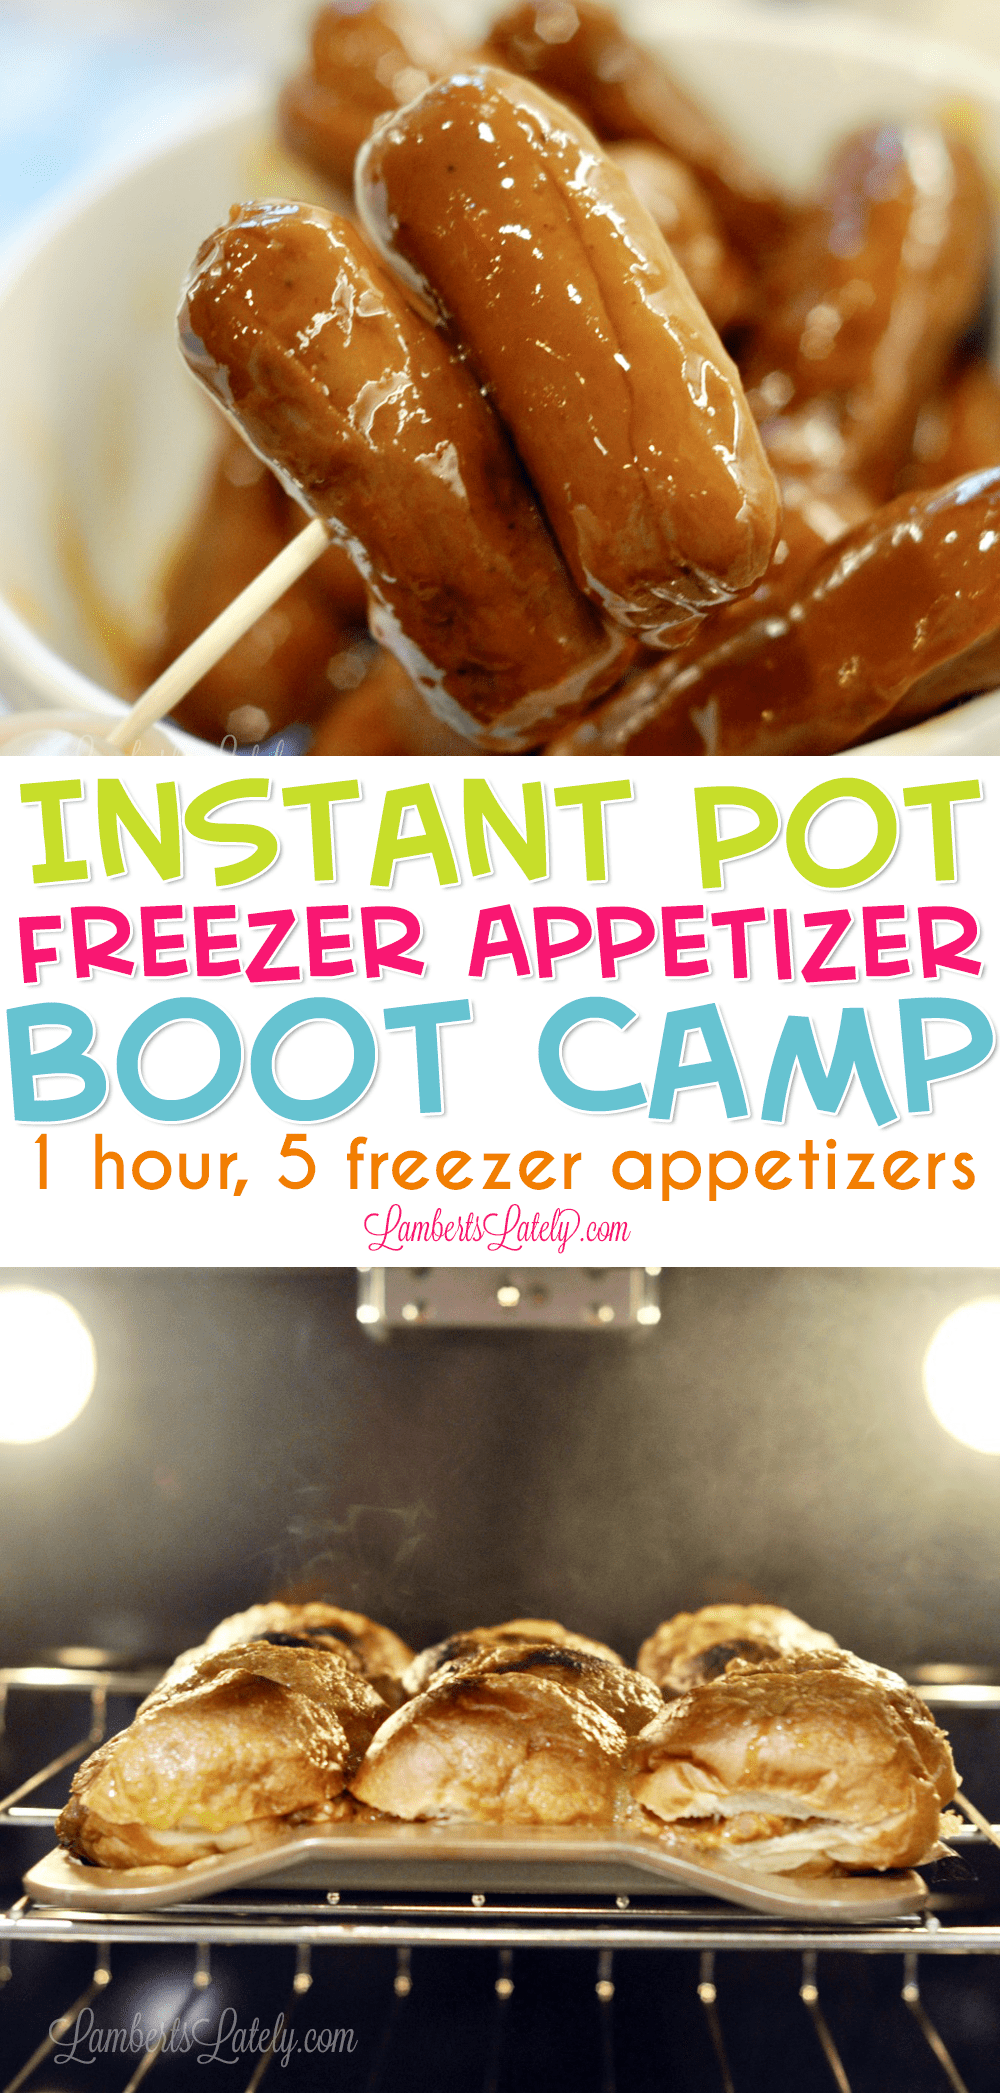 Instant Pot Freezer Meal Appetizer Boot Camp gives you five pressure cooker finger food recipes (Root Beer Little Smokies, Creamy Fiesta Dip, Spinach Artichoke Dip, Zesty Meatballs, Sloppy Bacon Cheeseburger Sliders) that can be made ahead of time for holiday parties or get-togethers! #instantpot #freezermeals #makeaheadmeals #appetizers